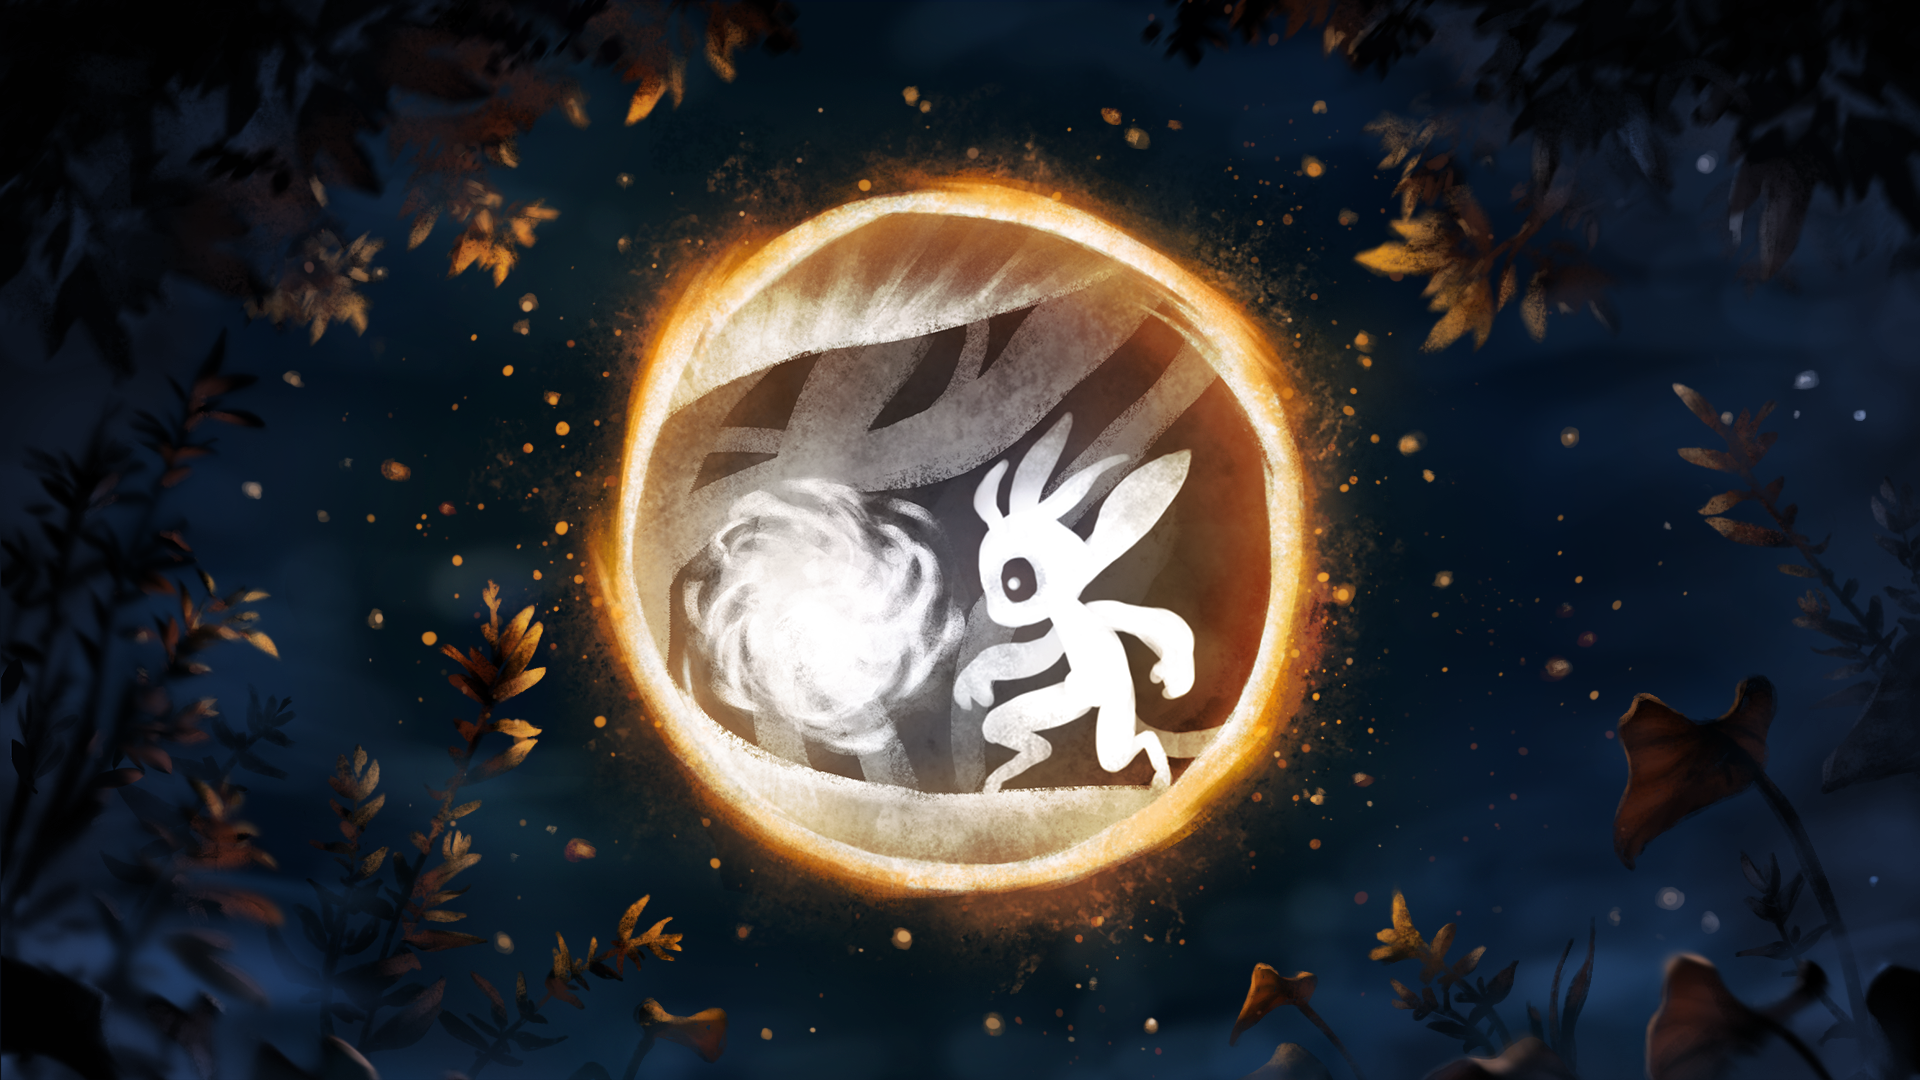 So many secrets achievement for Ori and the Blind Forest on Nintendo Switch